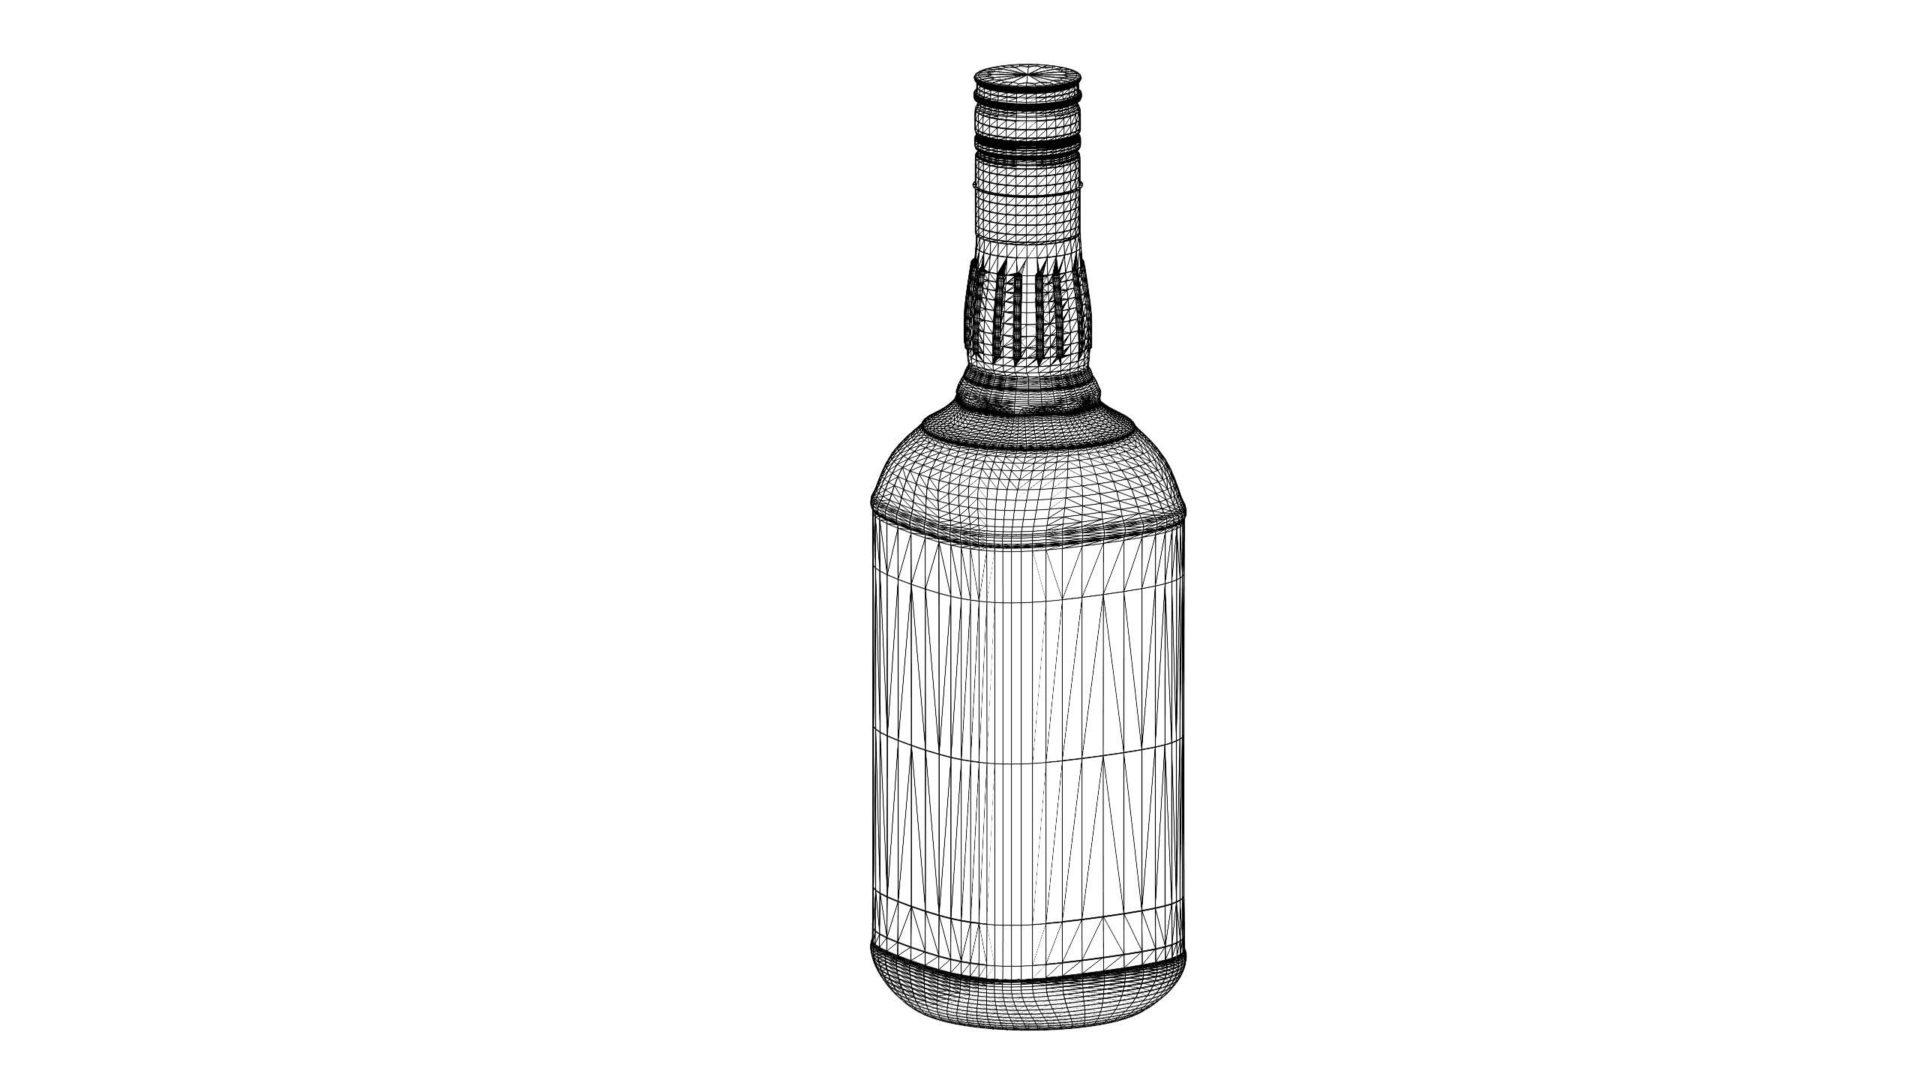 jim beam original bottle with new edition labels 3d model max fbx texture obj 282190